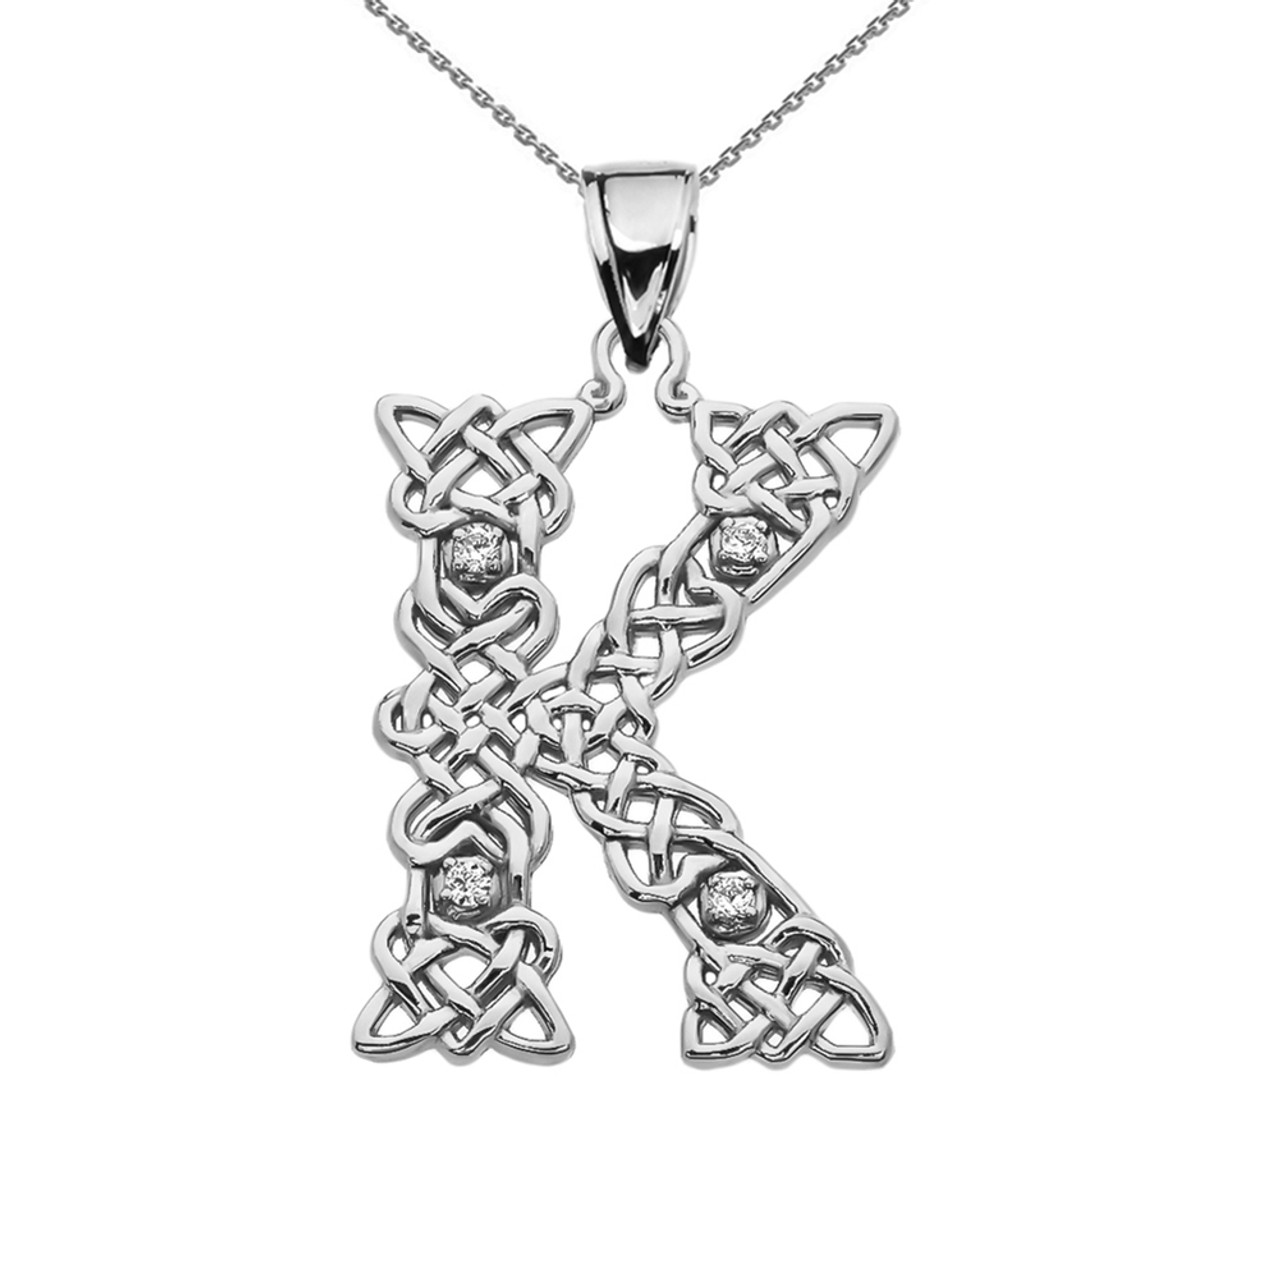 Cz k initial in celtic pattern sterling silver pendant necklace k initial in celtic knot pattern sterling silver pendant necklace with cz mozeypictures